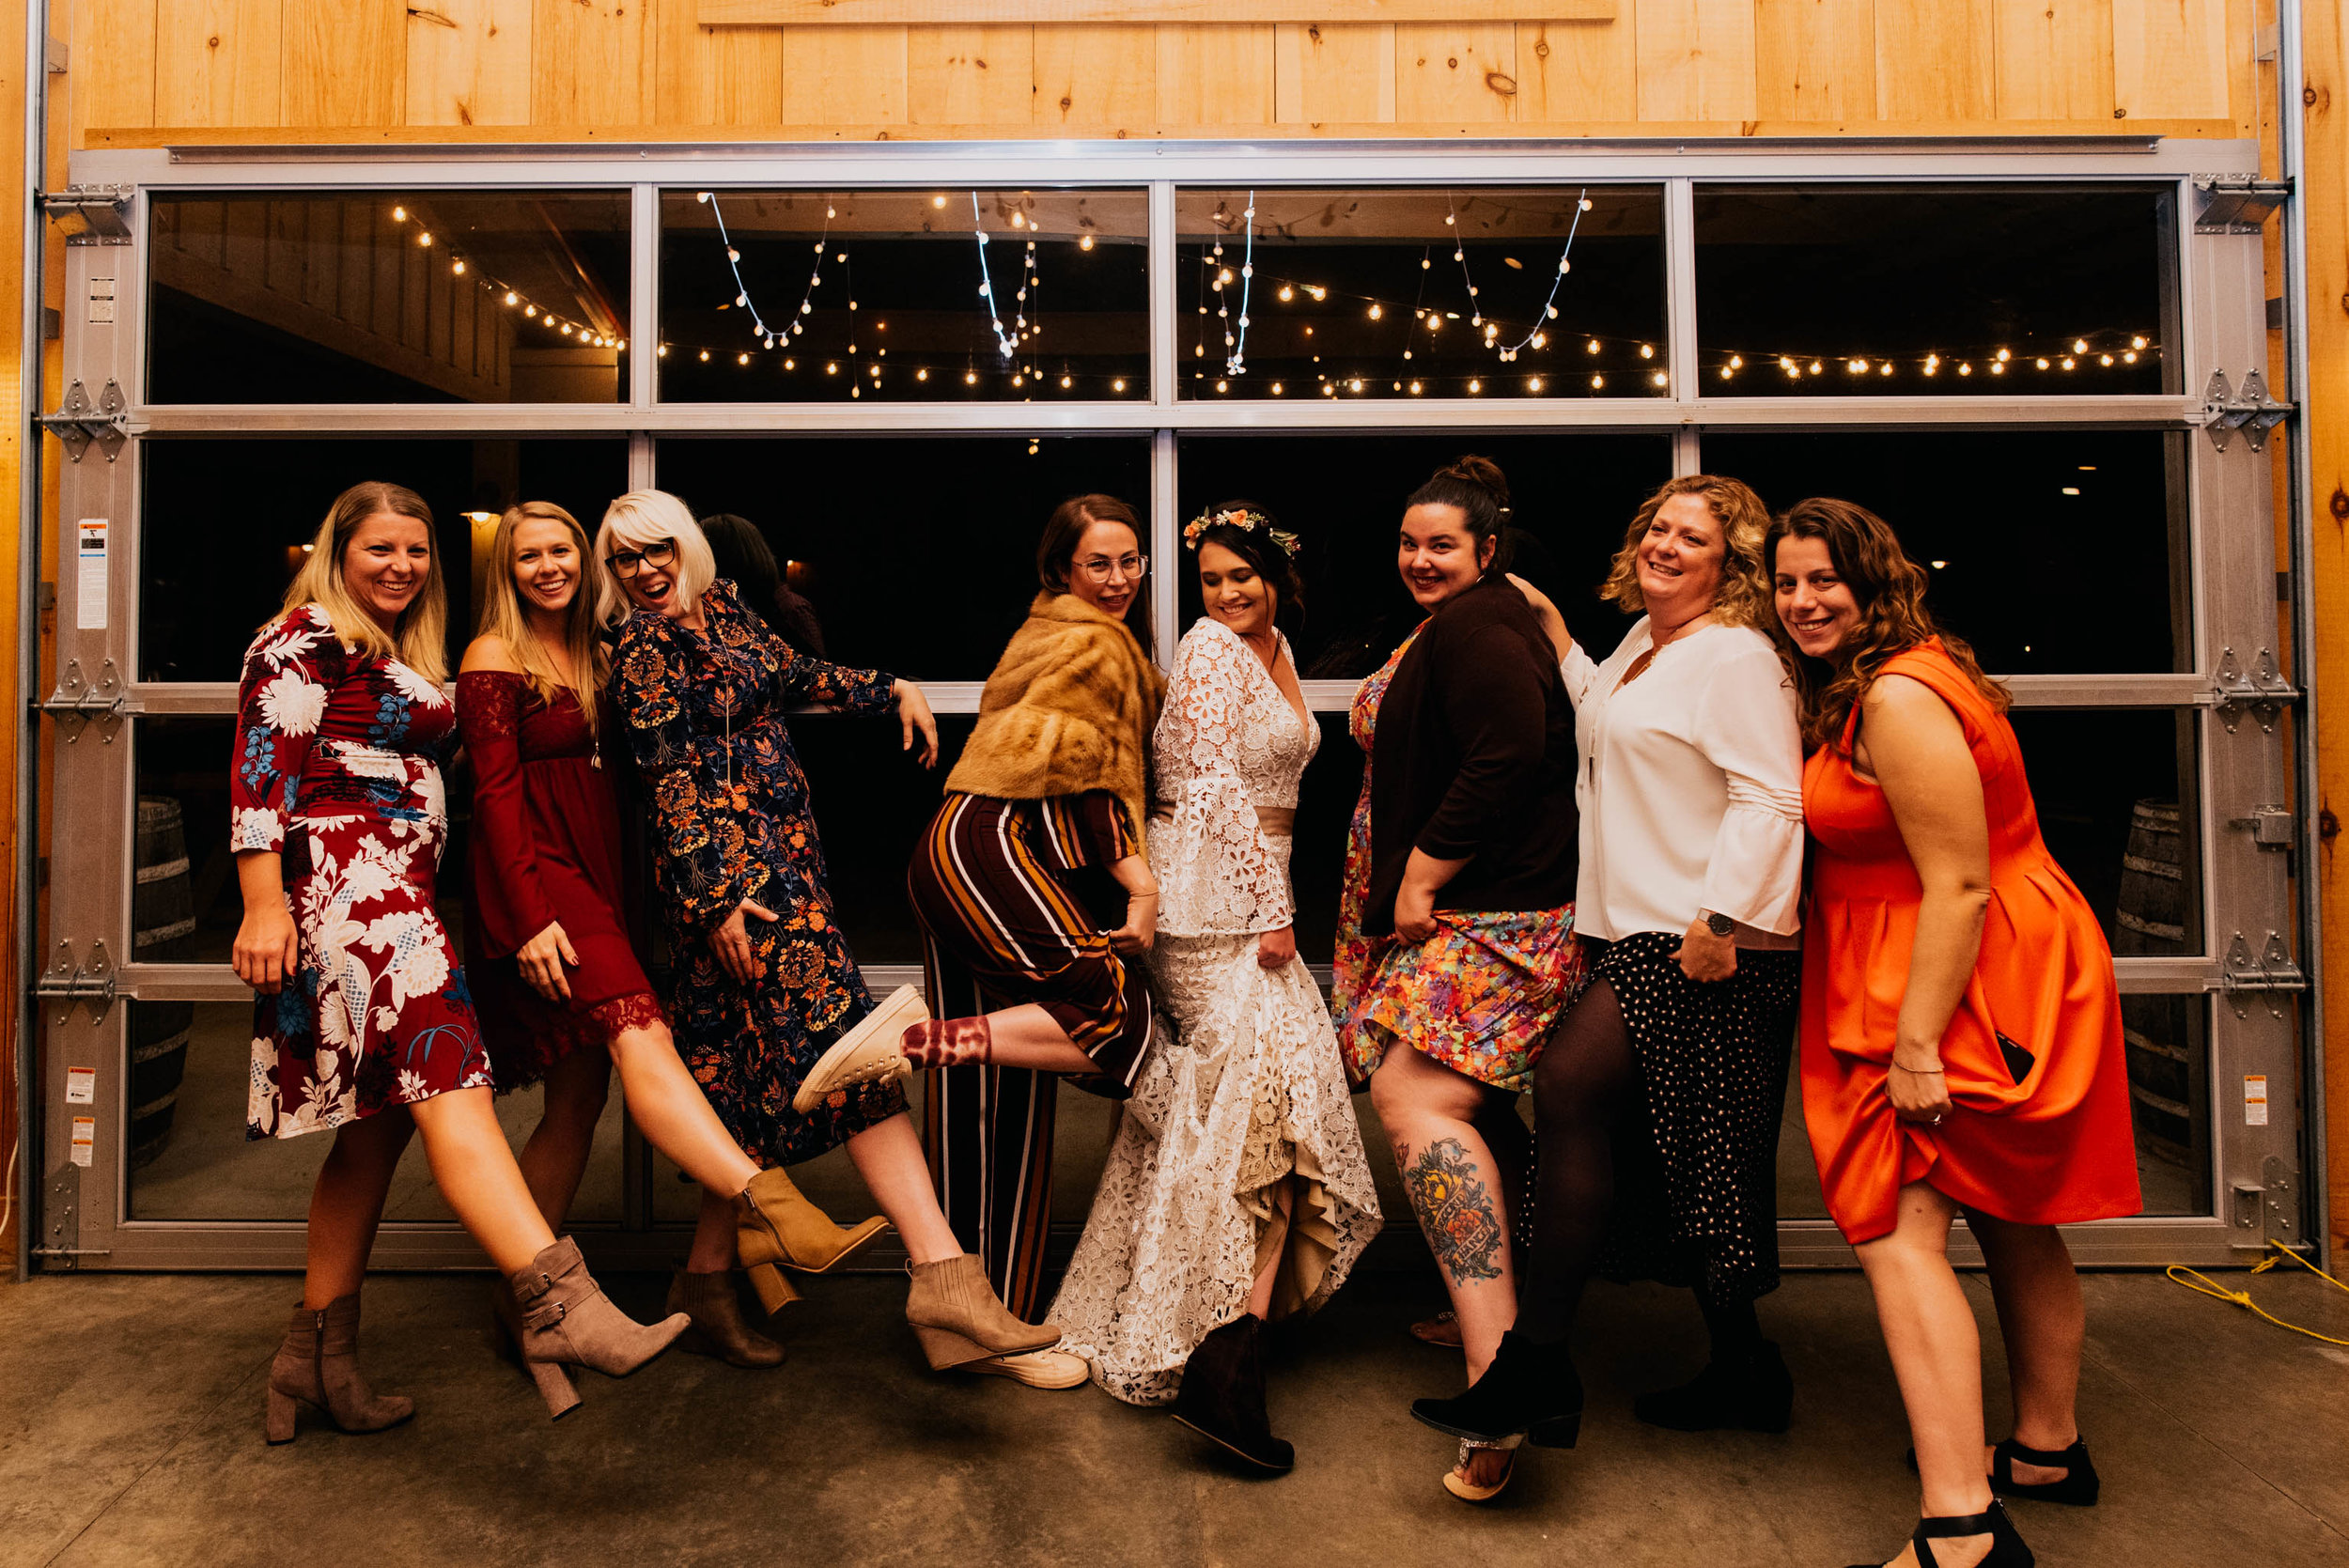 bride and all of her friends showing some leg together at the end of the night